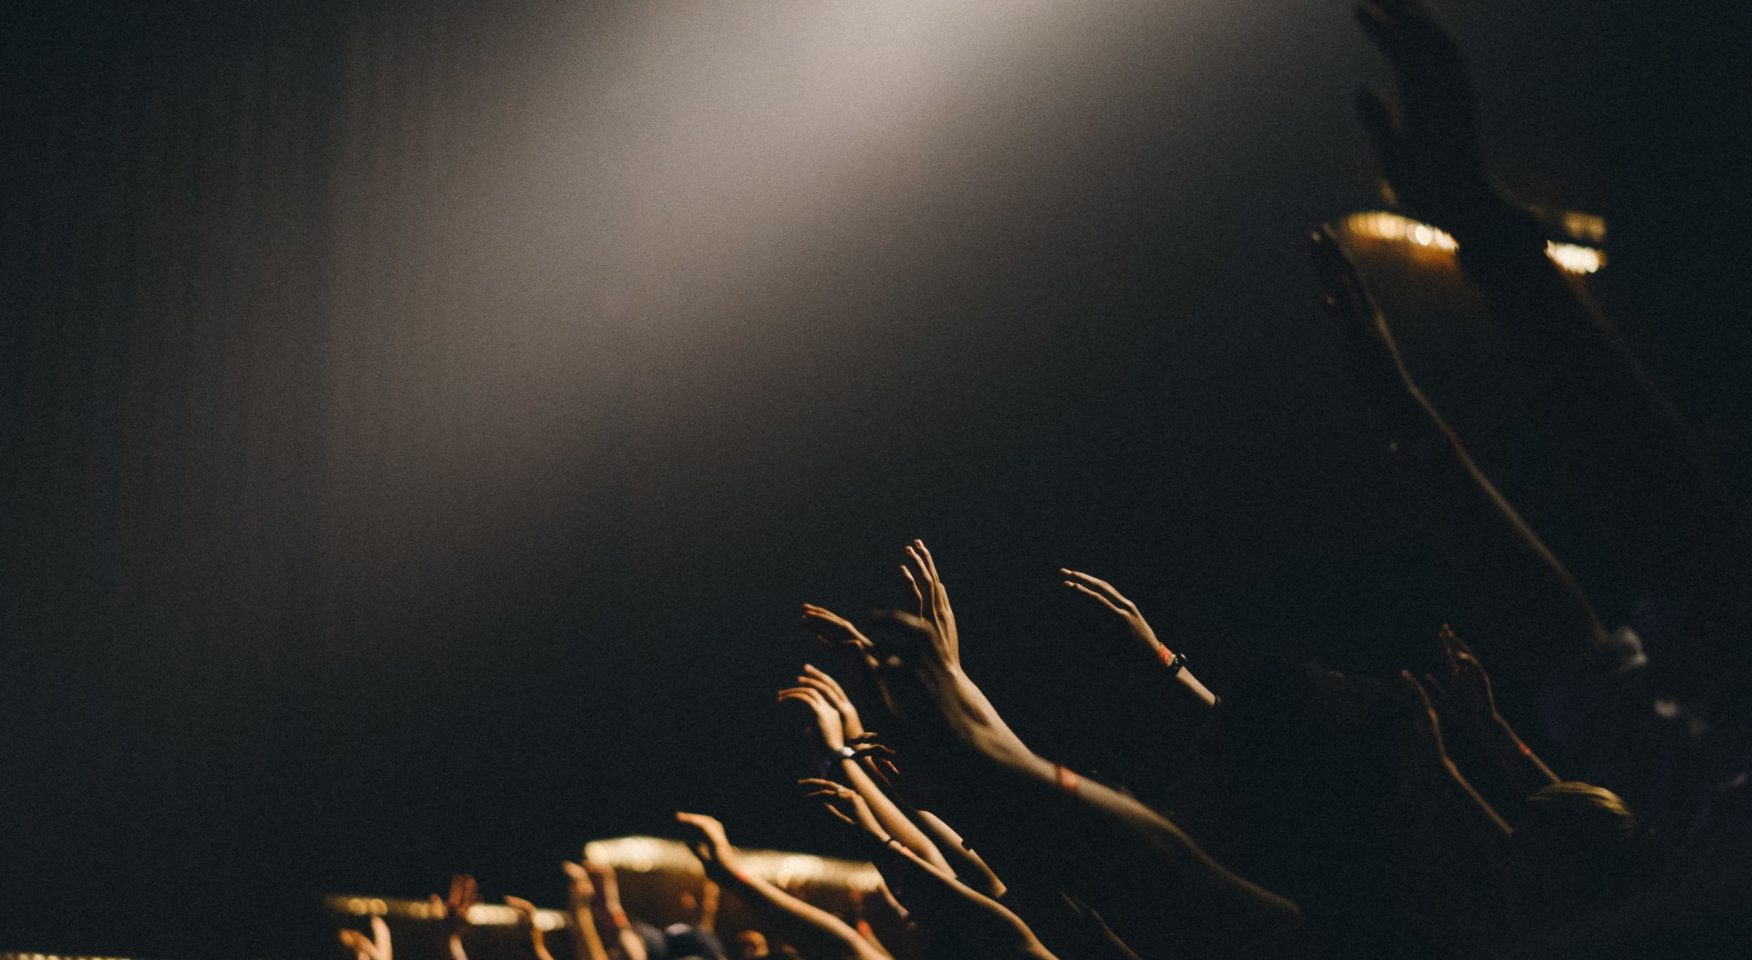 People worshipping in a dark room